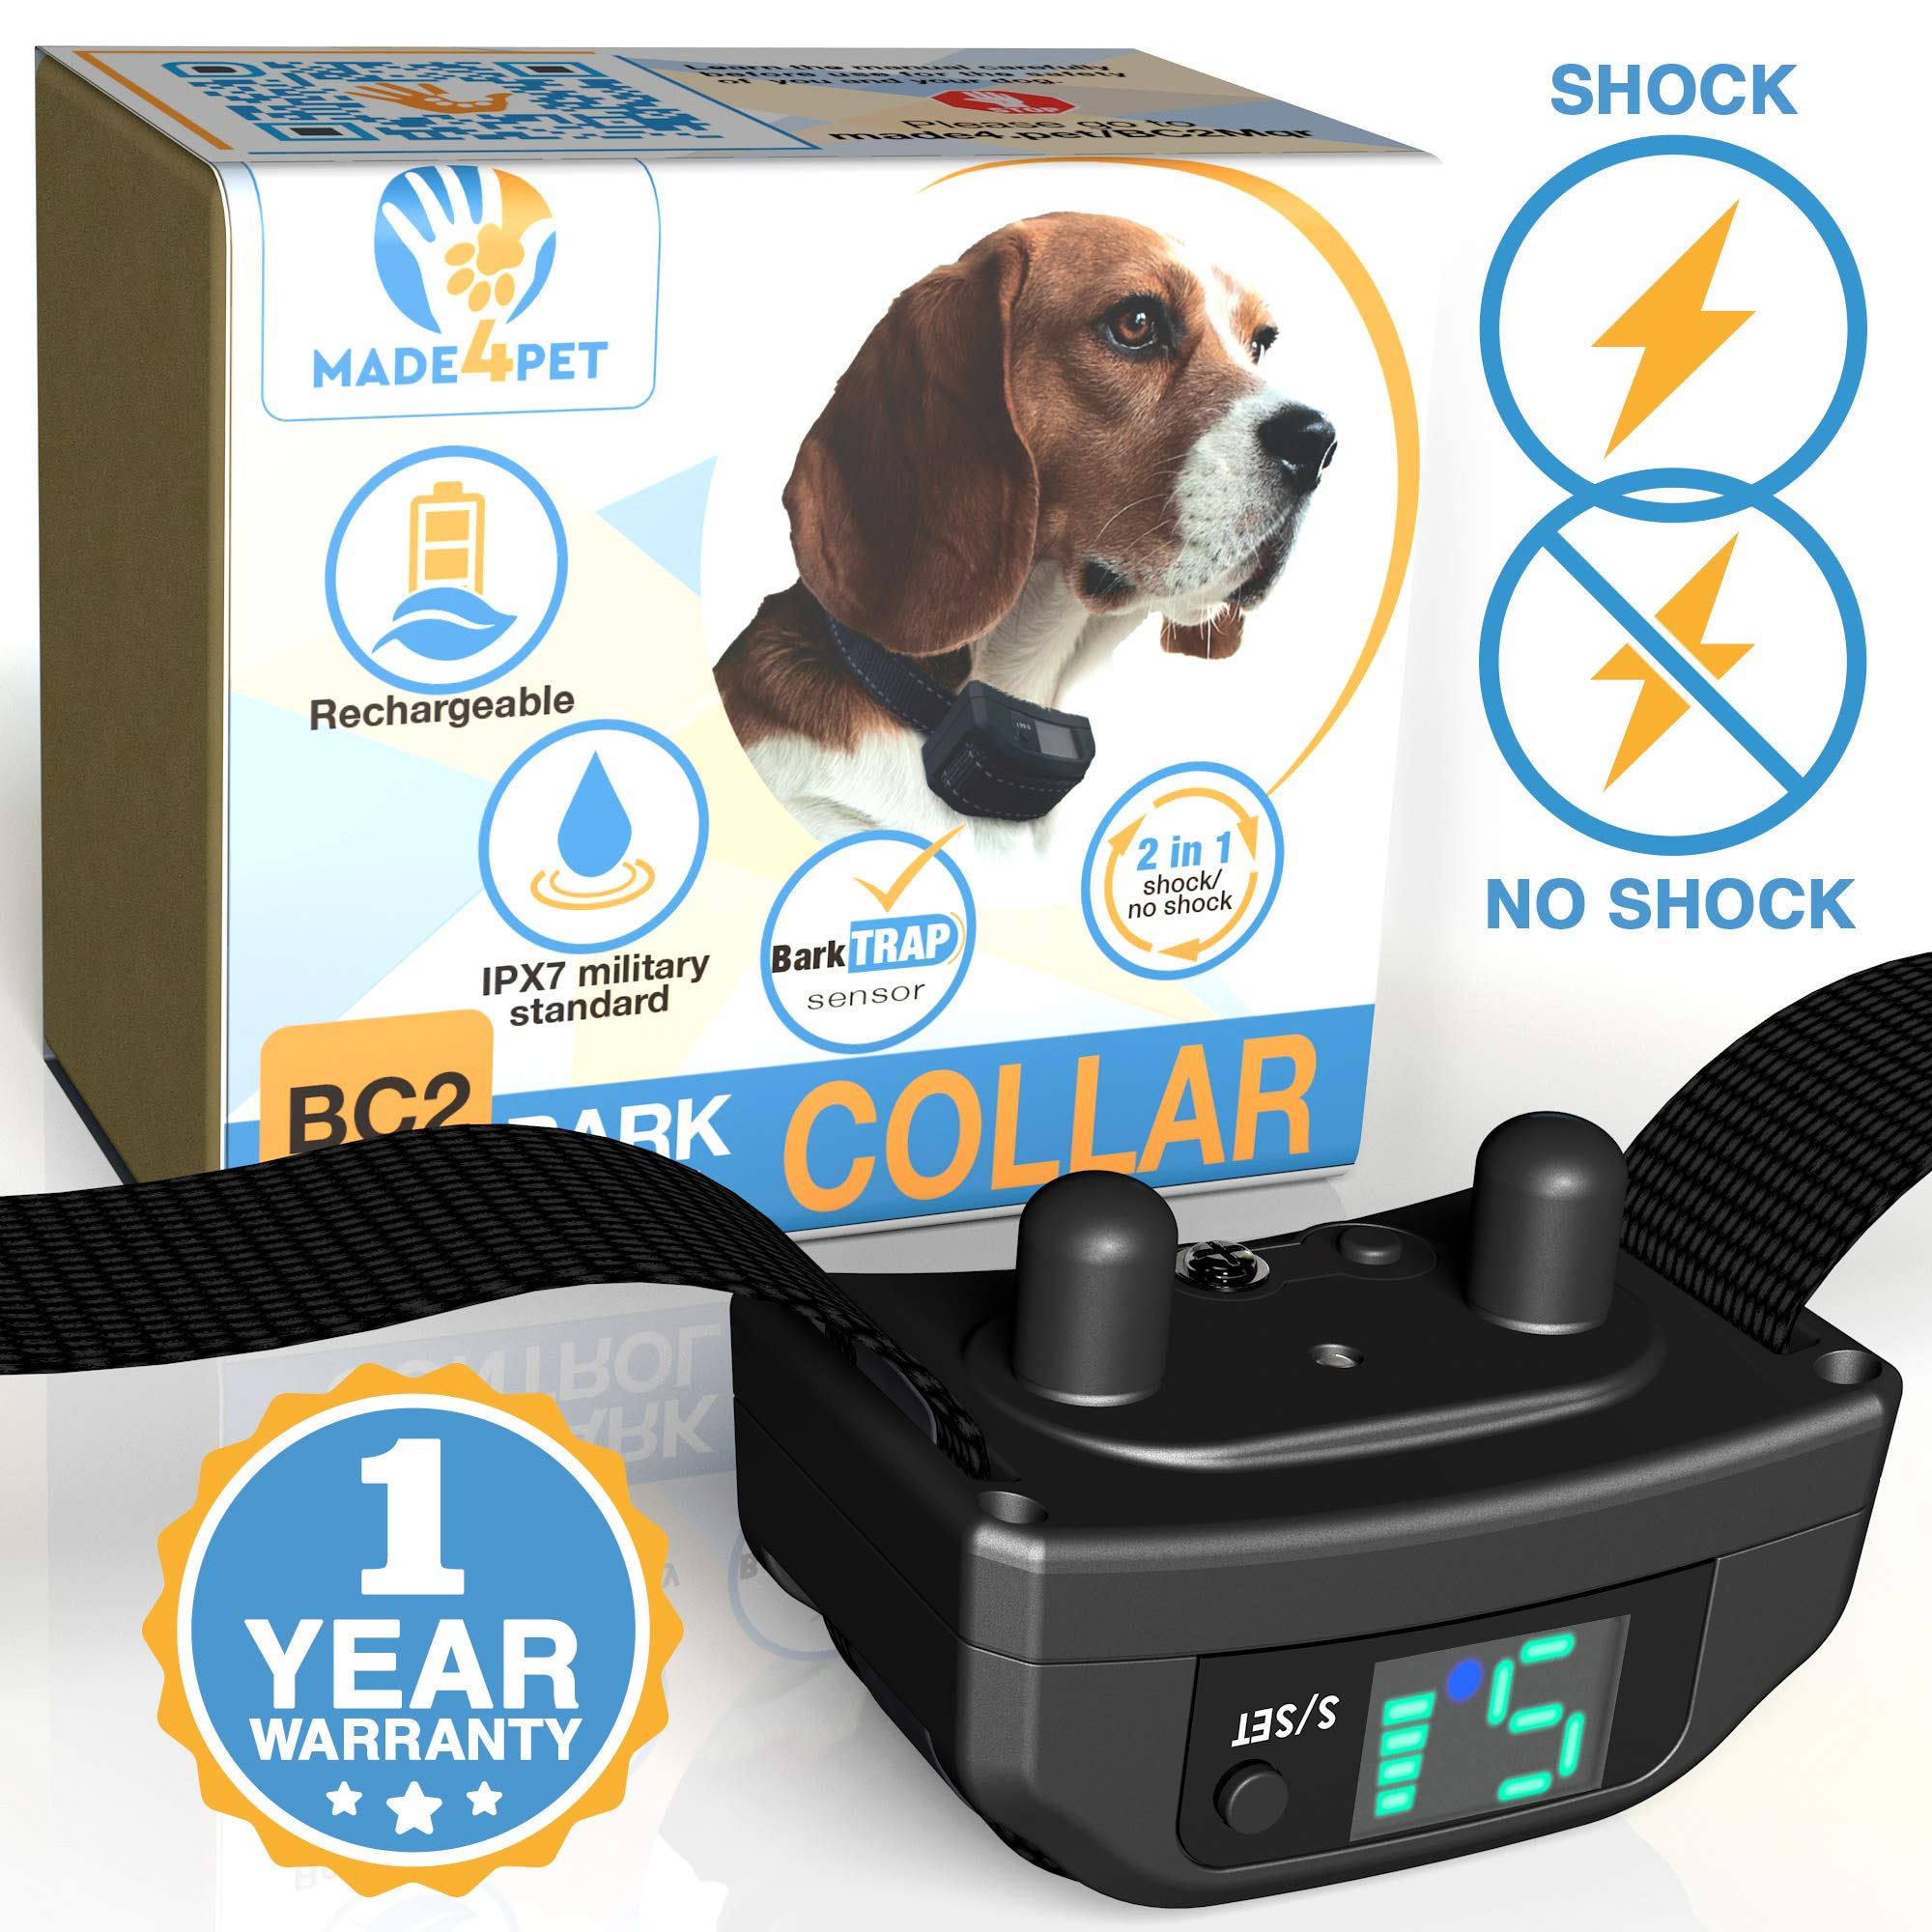 Made4Pet Bark Collar Small Large Dog - Vibration or Shock Barking Collar - Rechargeable and Waterproof Anti Barking Device - No Bark Control Collar